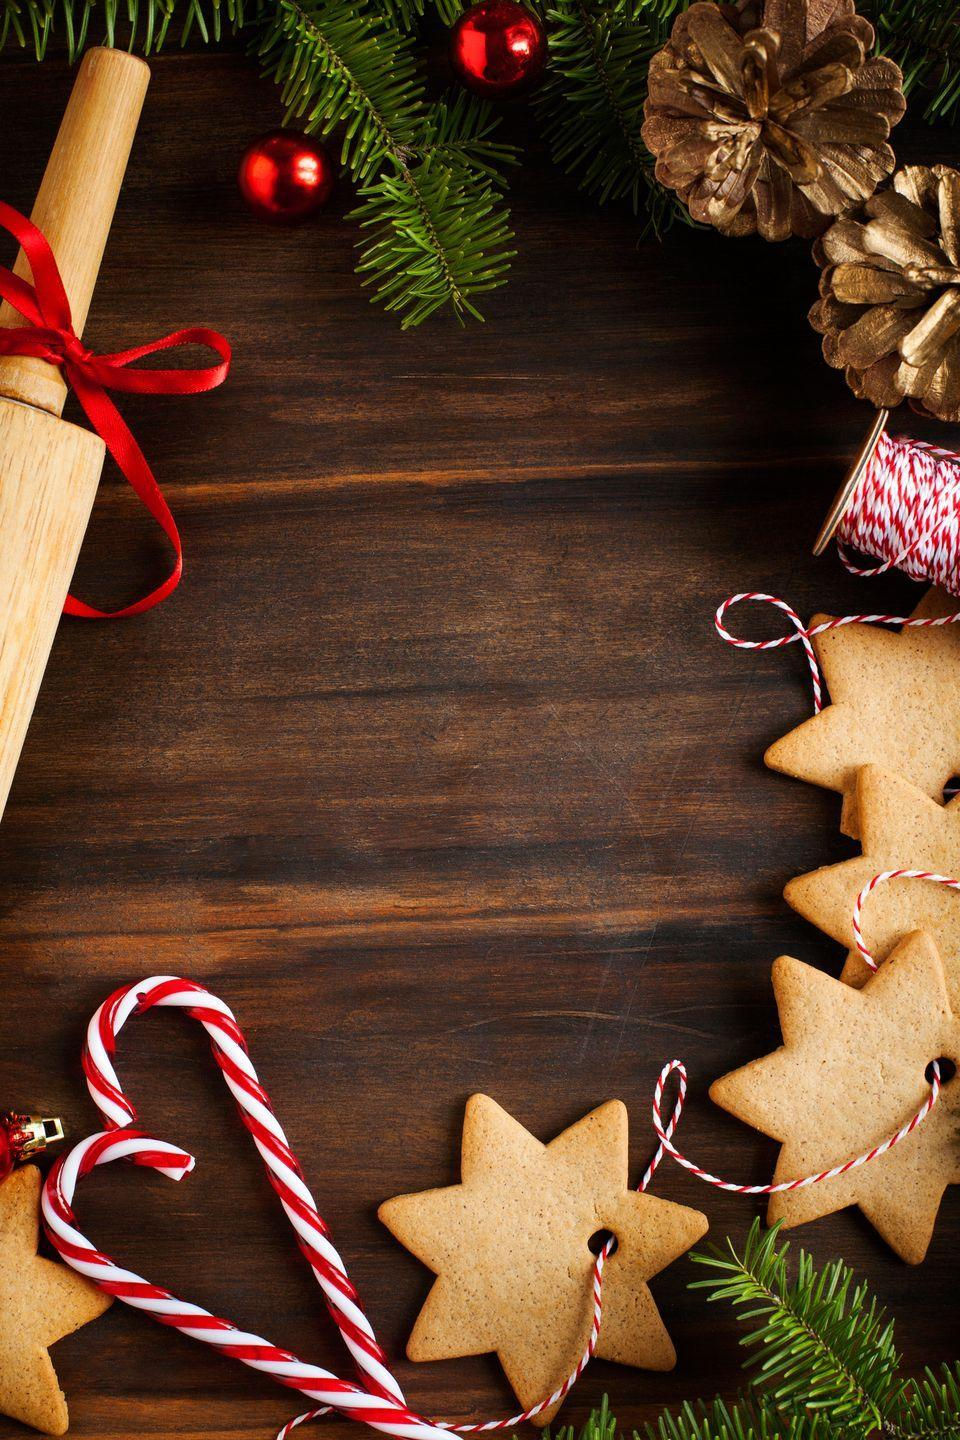 """<p>For <a href=""""https://www.goodhousekeeping.com/holidays/christmas-ideas/how-to/g2196/christmas-table-settings/"""" rel=""""nofollow noopener"""" target=""""_blank"""" data-ylk=""""slk:decorative items"""" class=""""link rapid-noclick-resp"""">decorative items</a> that will only be on display for a few months out of the year, it's not worth shelling out the big bucks. Instead, shop the <a href=""""https://www.dollartree.com/Seasonal-Holidays/1248/index.cat"""" rel=""""nofollow noopener"""" target=""""_blank"""" data-ylk=""""slk:Dollar Tree's discounted selection of wreaths, florals, garland, and more"""" class=""""link rapid-noclick-resp"""">Dollar Tree's discounted selection of wreaths, florals, garland, and more</a>. </p>"""